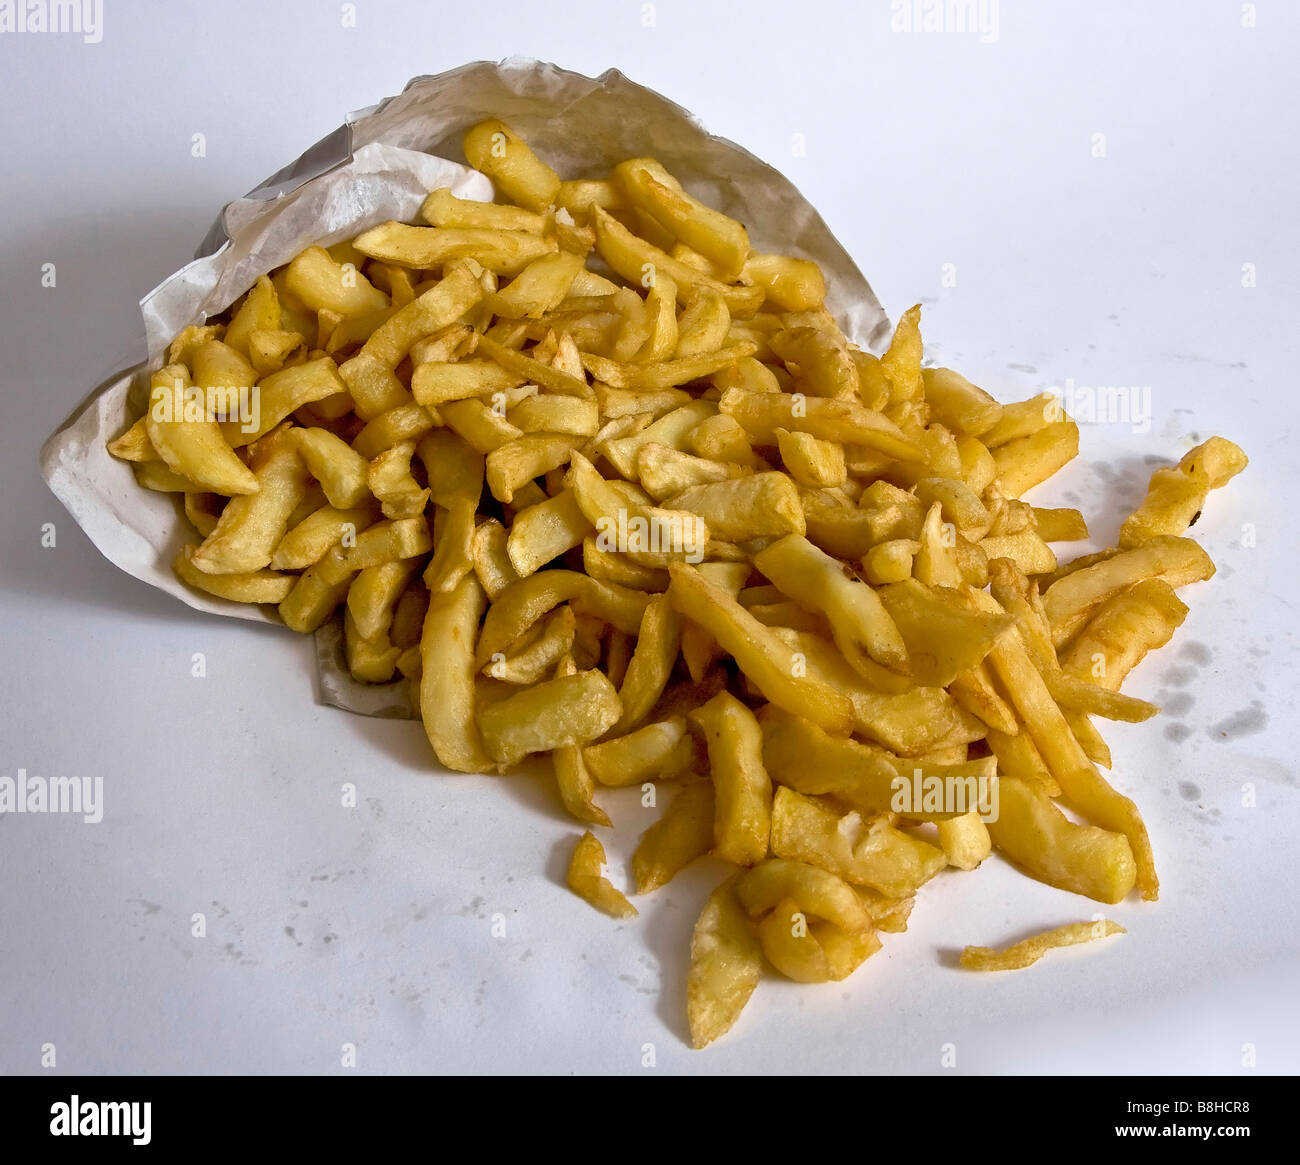 'junk food' chips 'bag of chips' - Stock Image